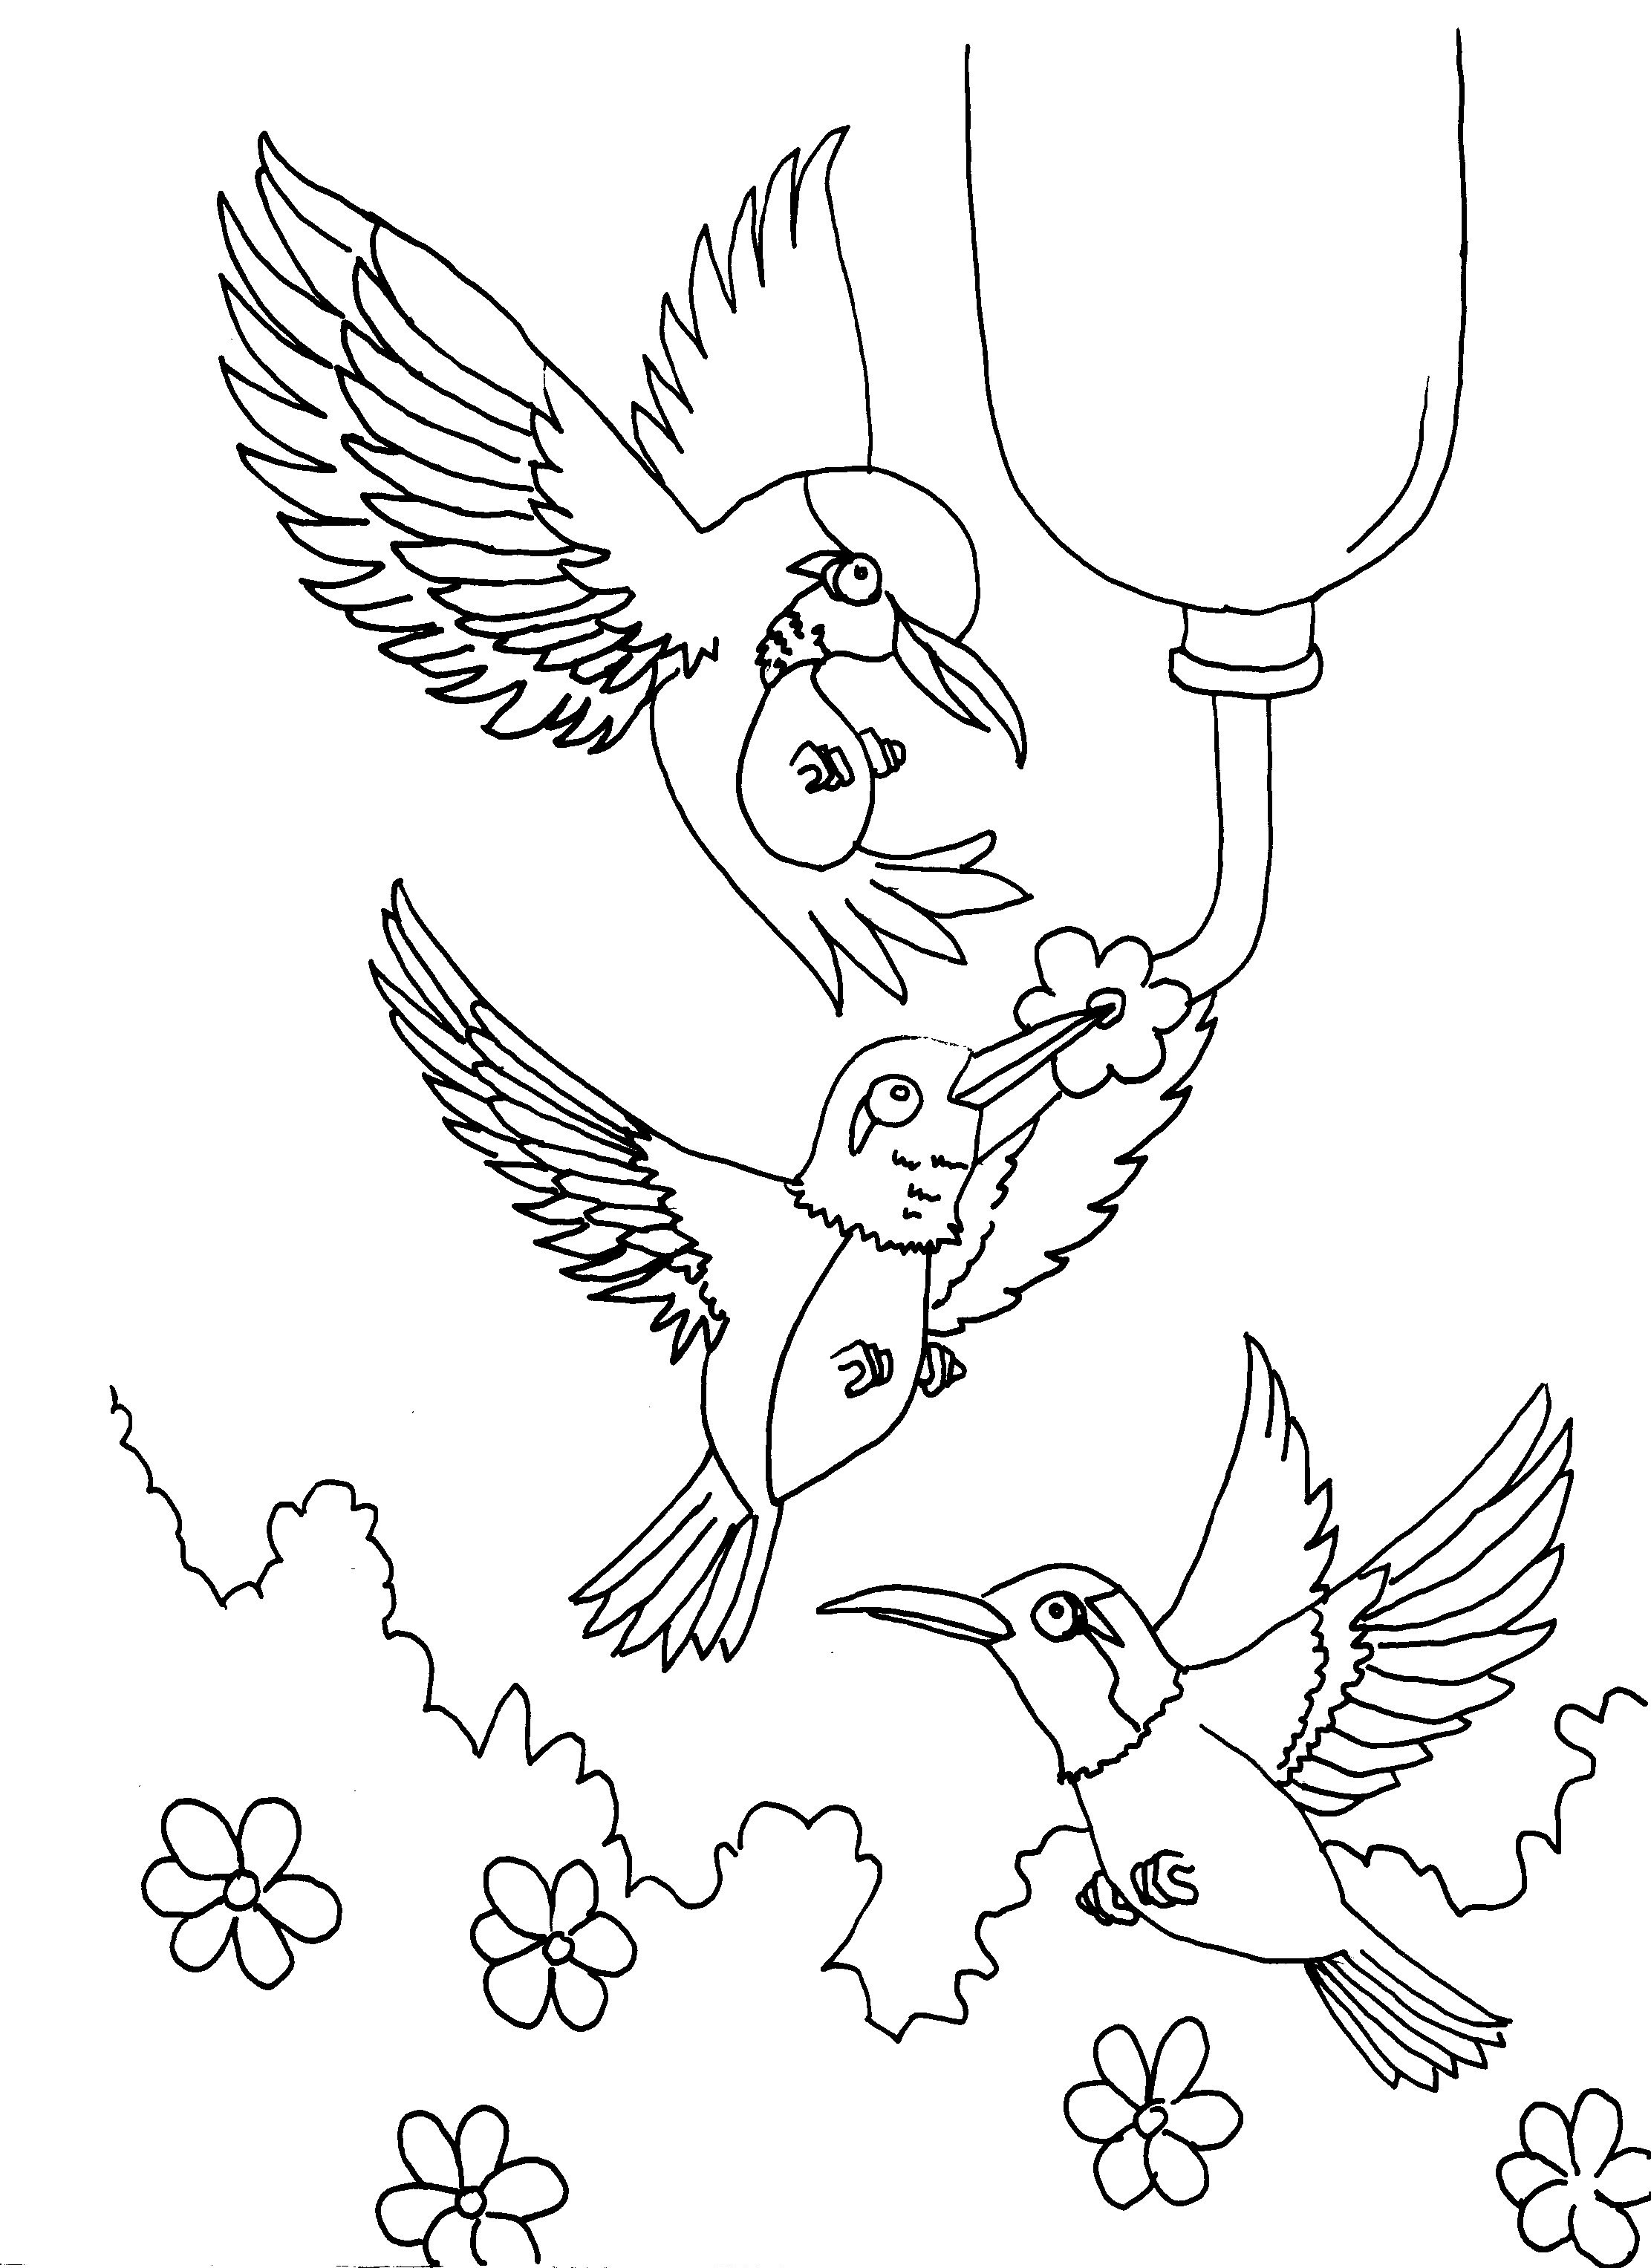 Coloring pictures of hummingbirds